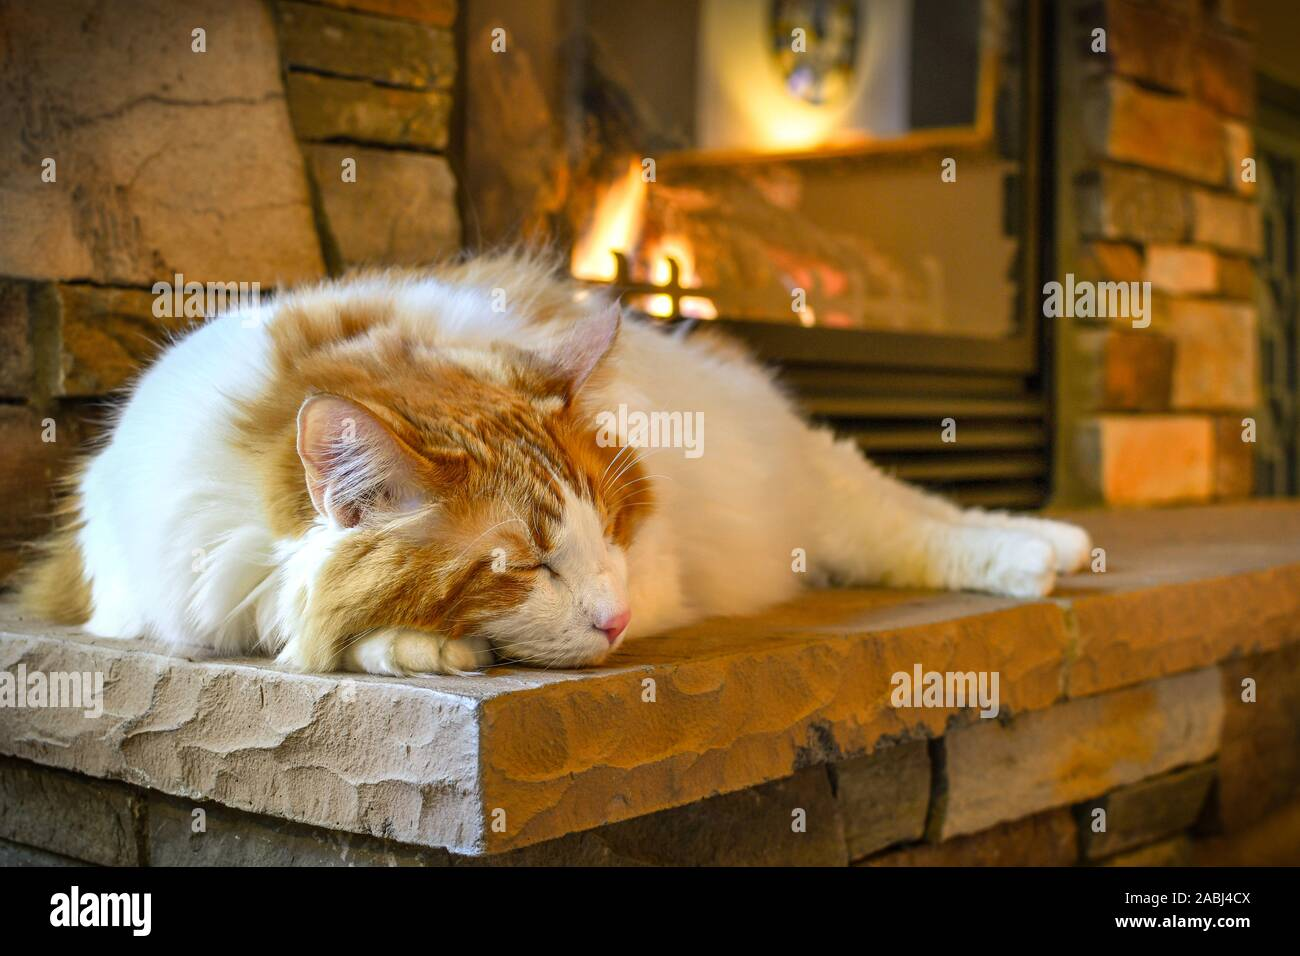 A long hair, orange and white Maine Coon cat sleeps on a hearth in front of a cozy gas fireplace with stone surround. Stock Photo